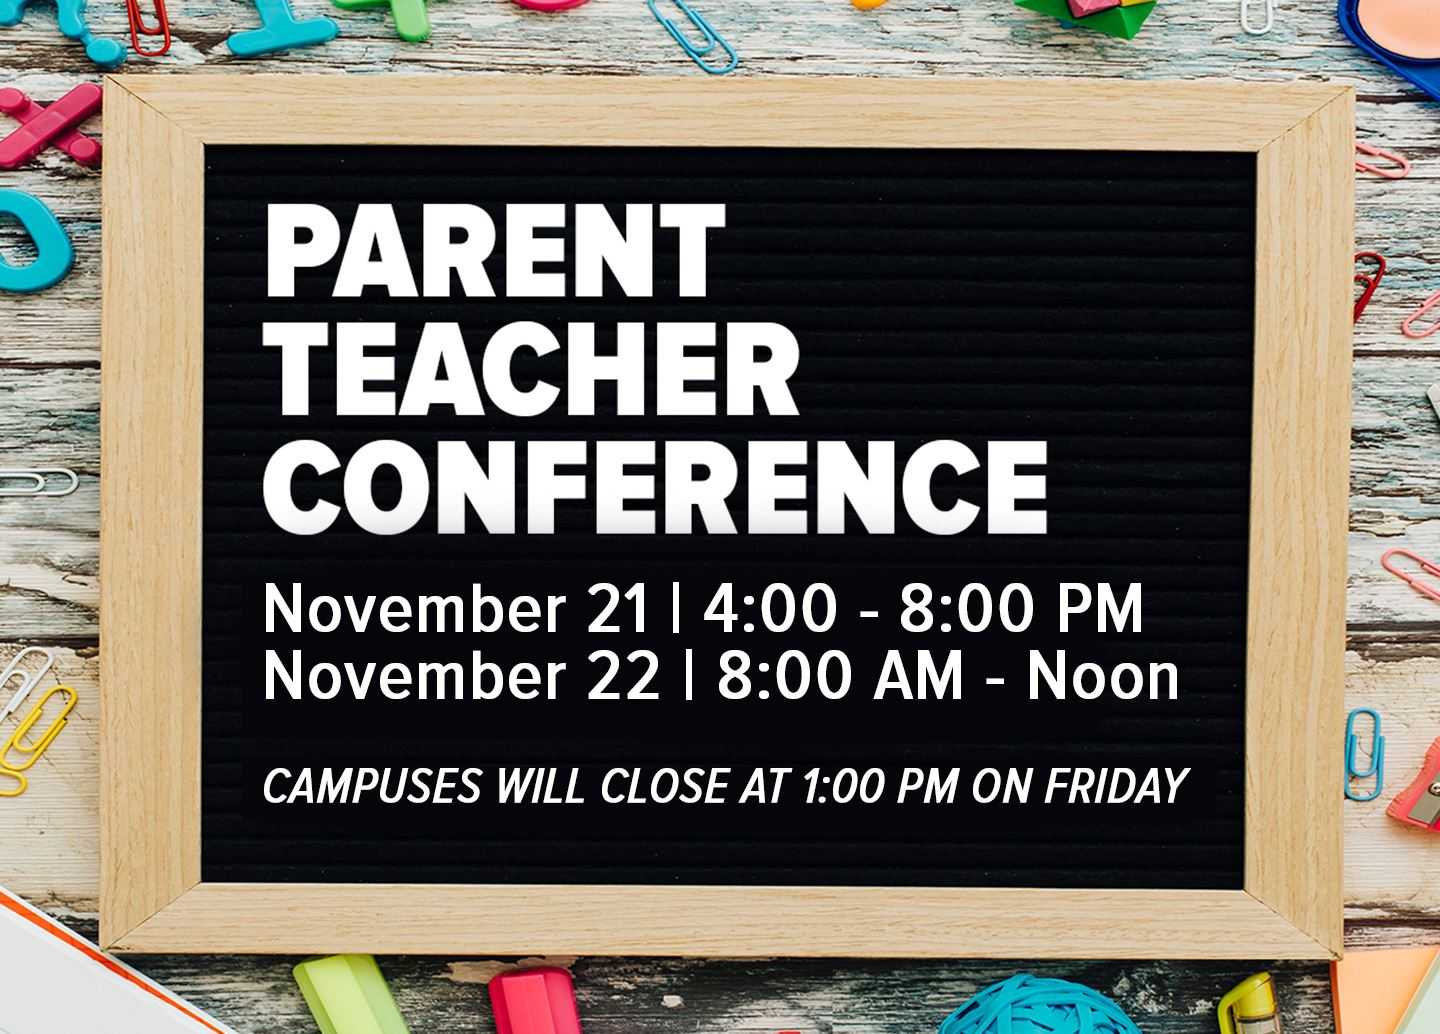 Parent Teacher Conferences will be held in the evening of Nov. 21 and morning of Nov. 22.